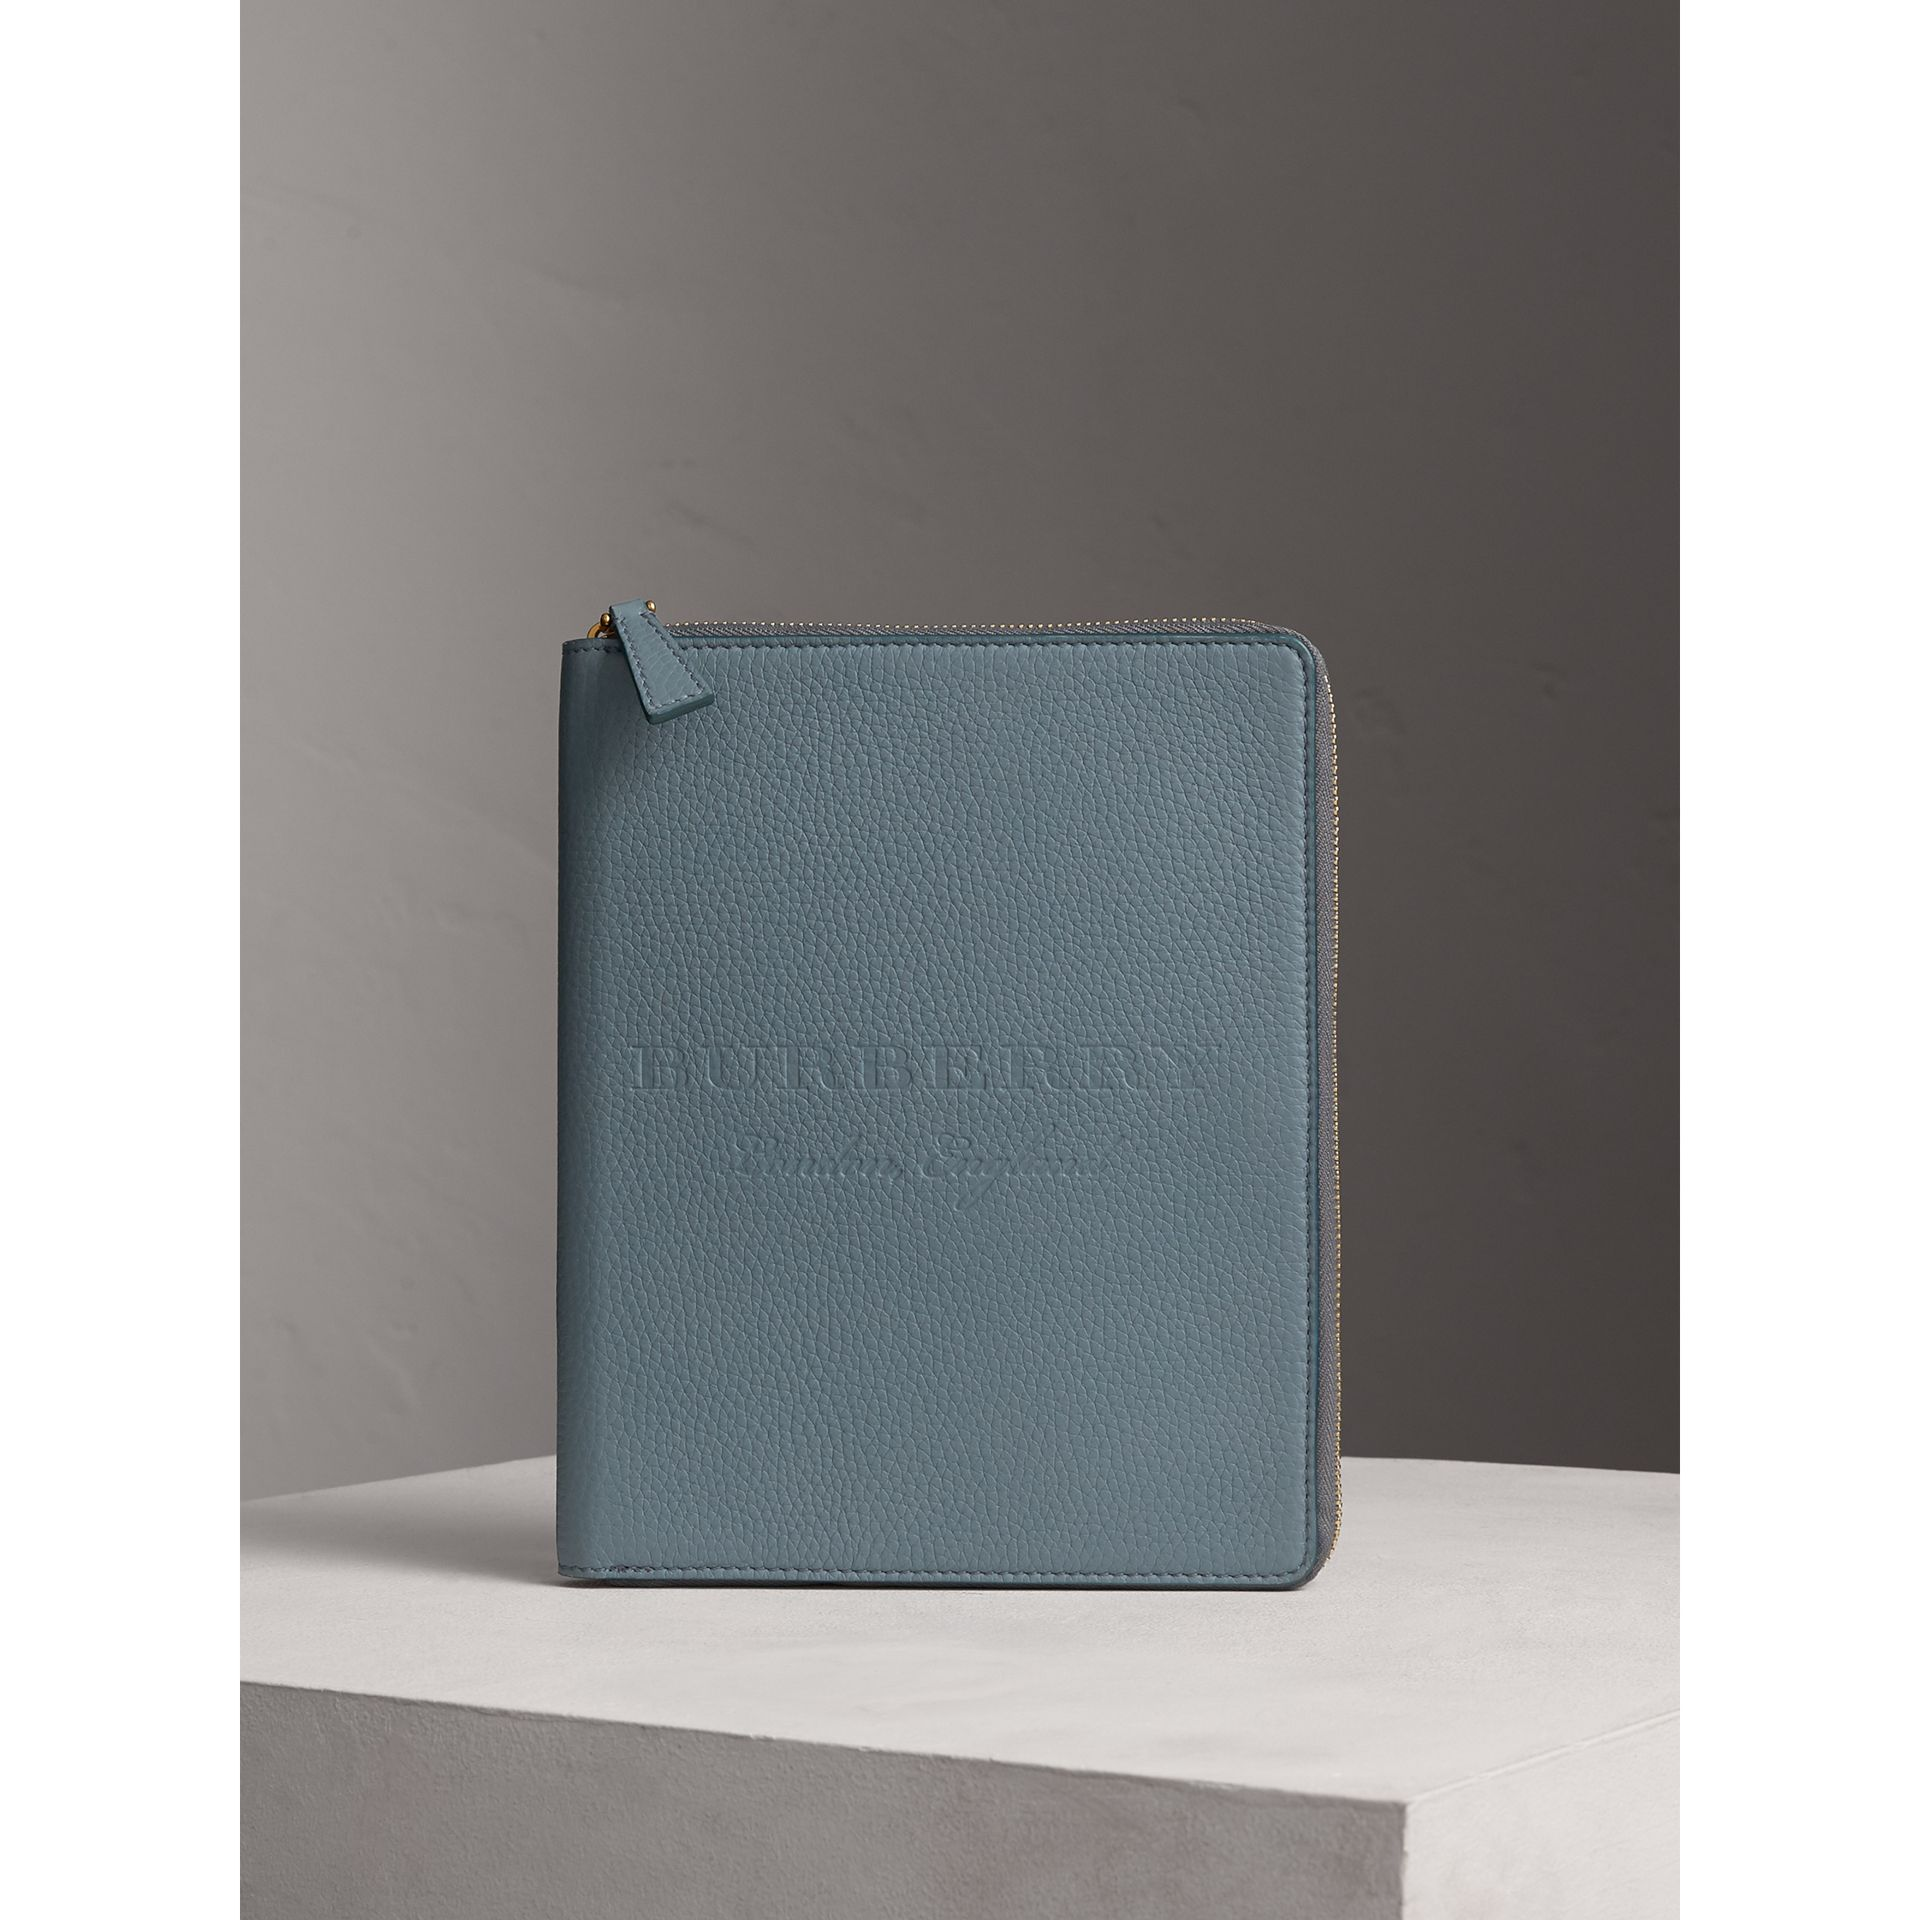 Embossed Leather Ziparound A5 Notebook Case in Dusty Teal Blue | Burberry United Kingdom - gallery image 4